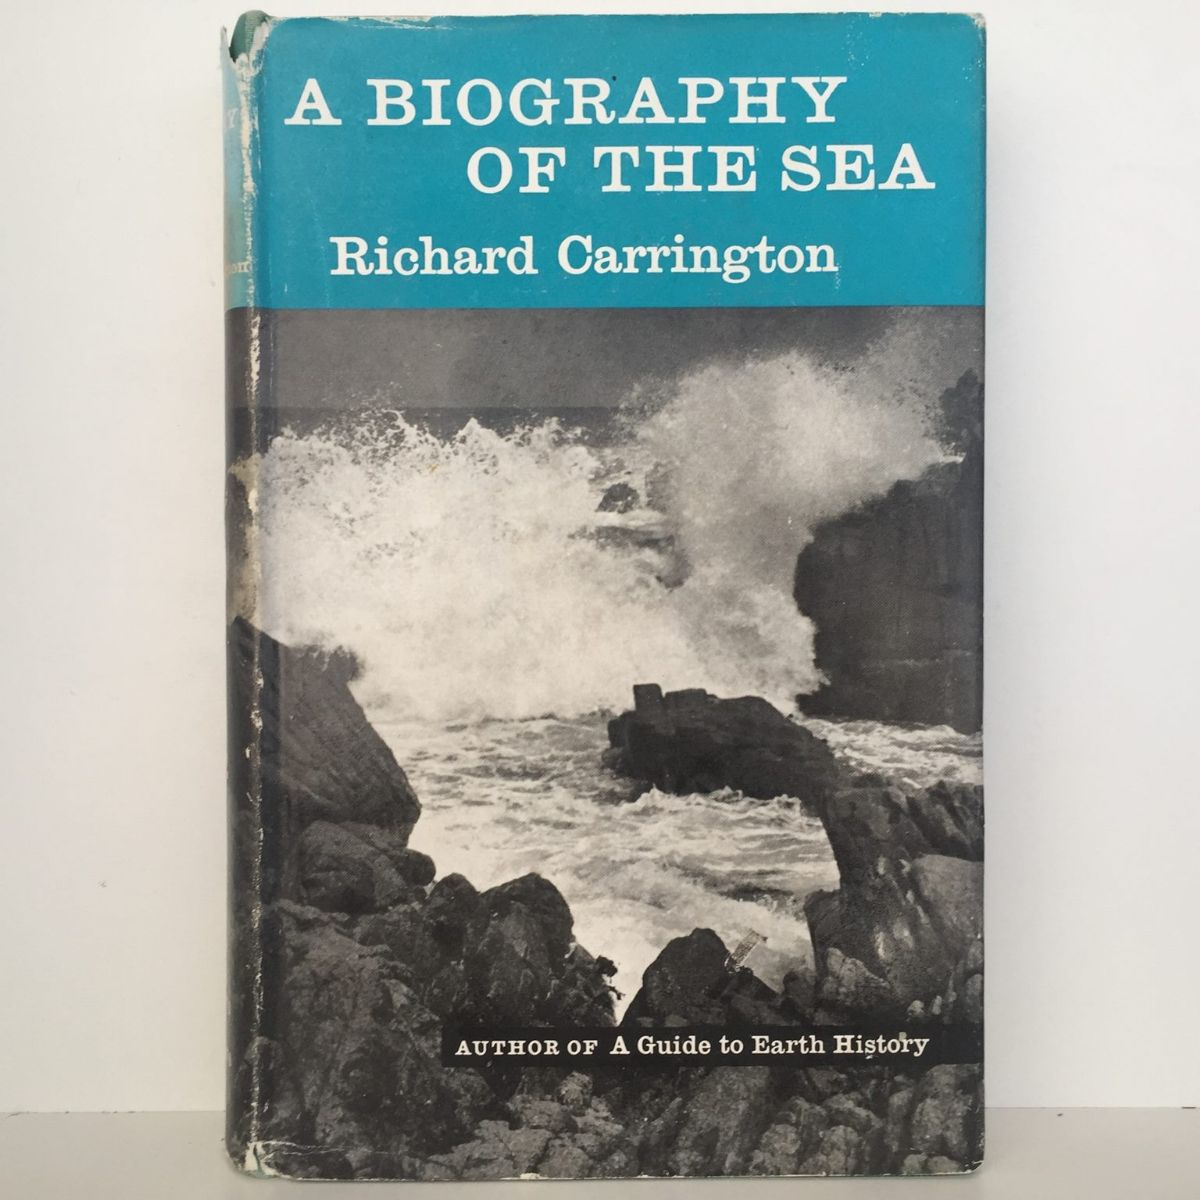 A BIOGRAPHY OF THE SEA